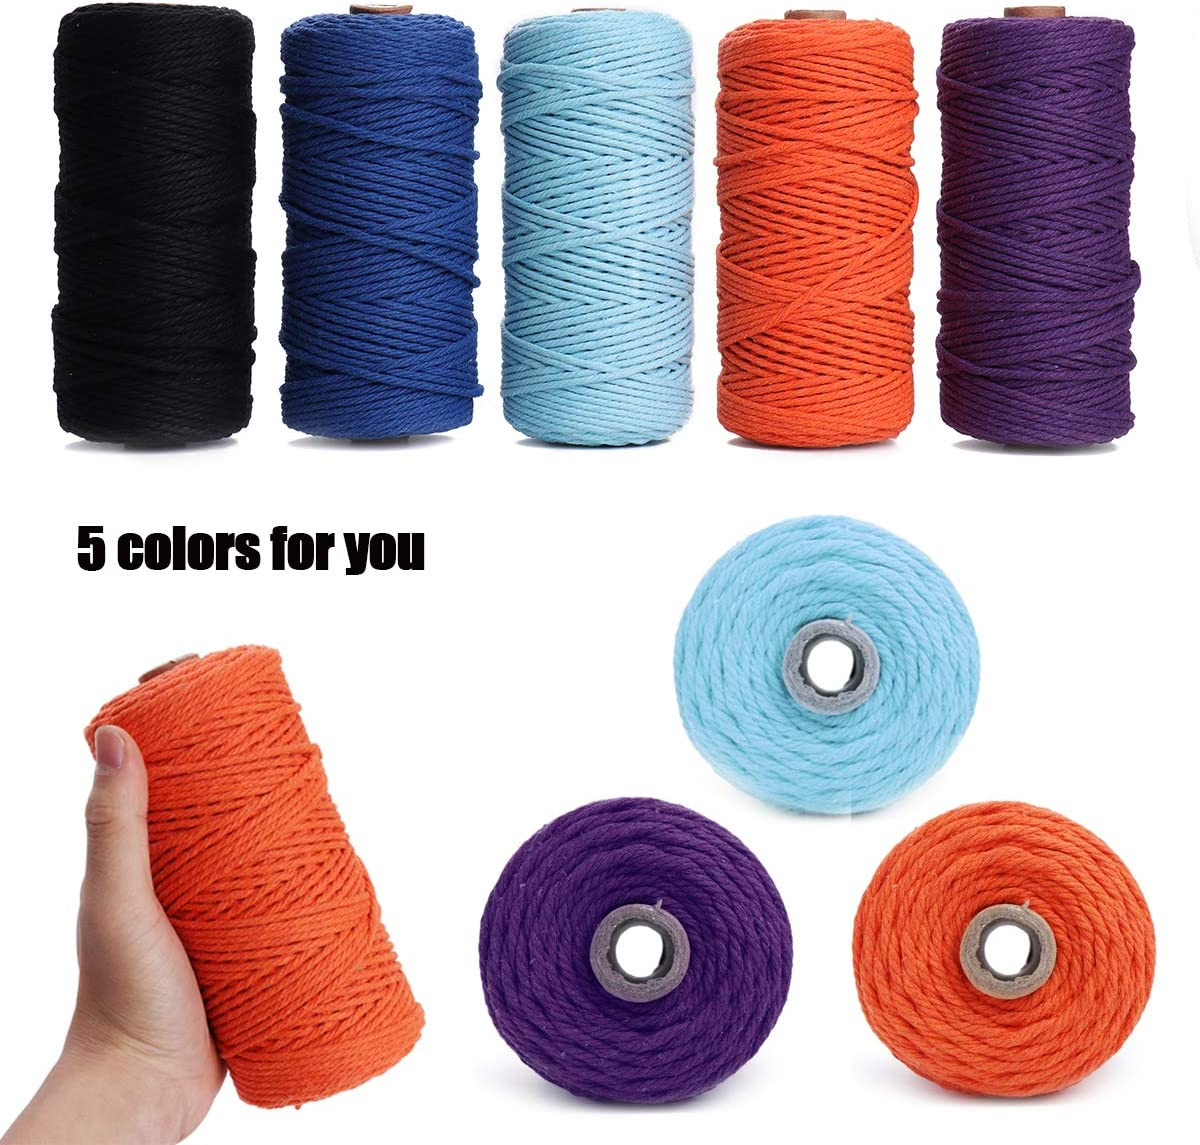 Blue HAPYLY Macrame Cord Natual Macrame Cotton Cord DIY Craft Cord Spool Twine Rustic String Cotton Rope for Wall Hanging,Plant Hangers,Crafts,Knitting,Decorative Projects 3mm x100m